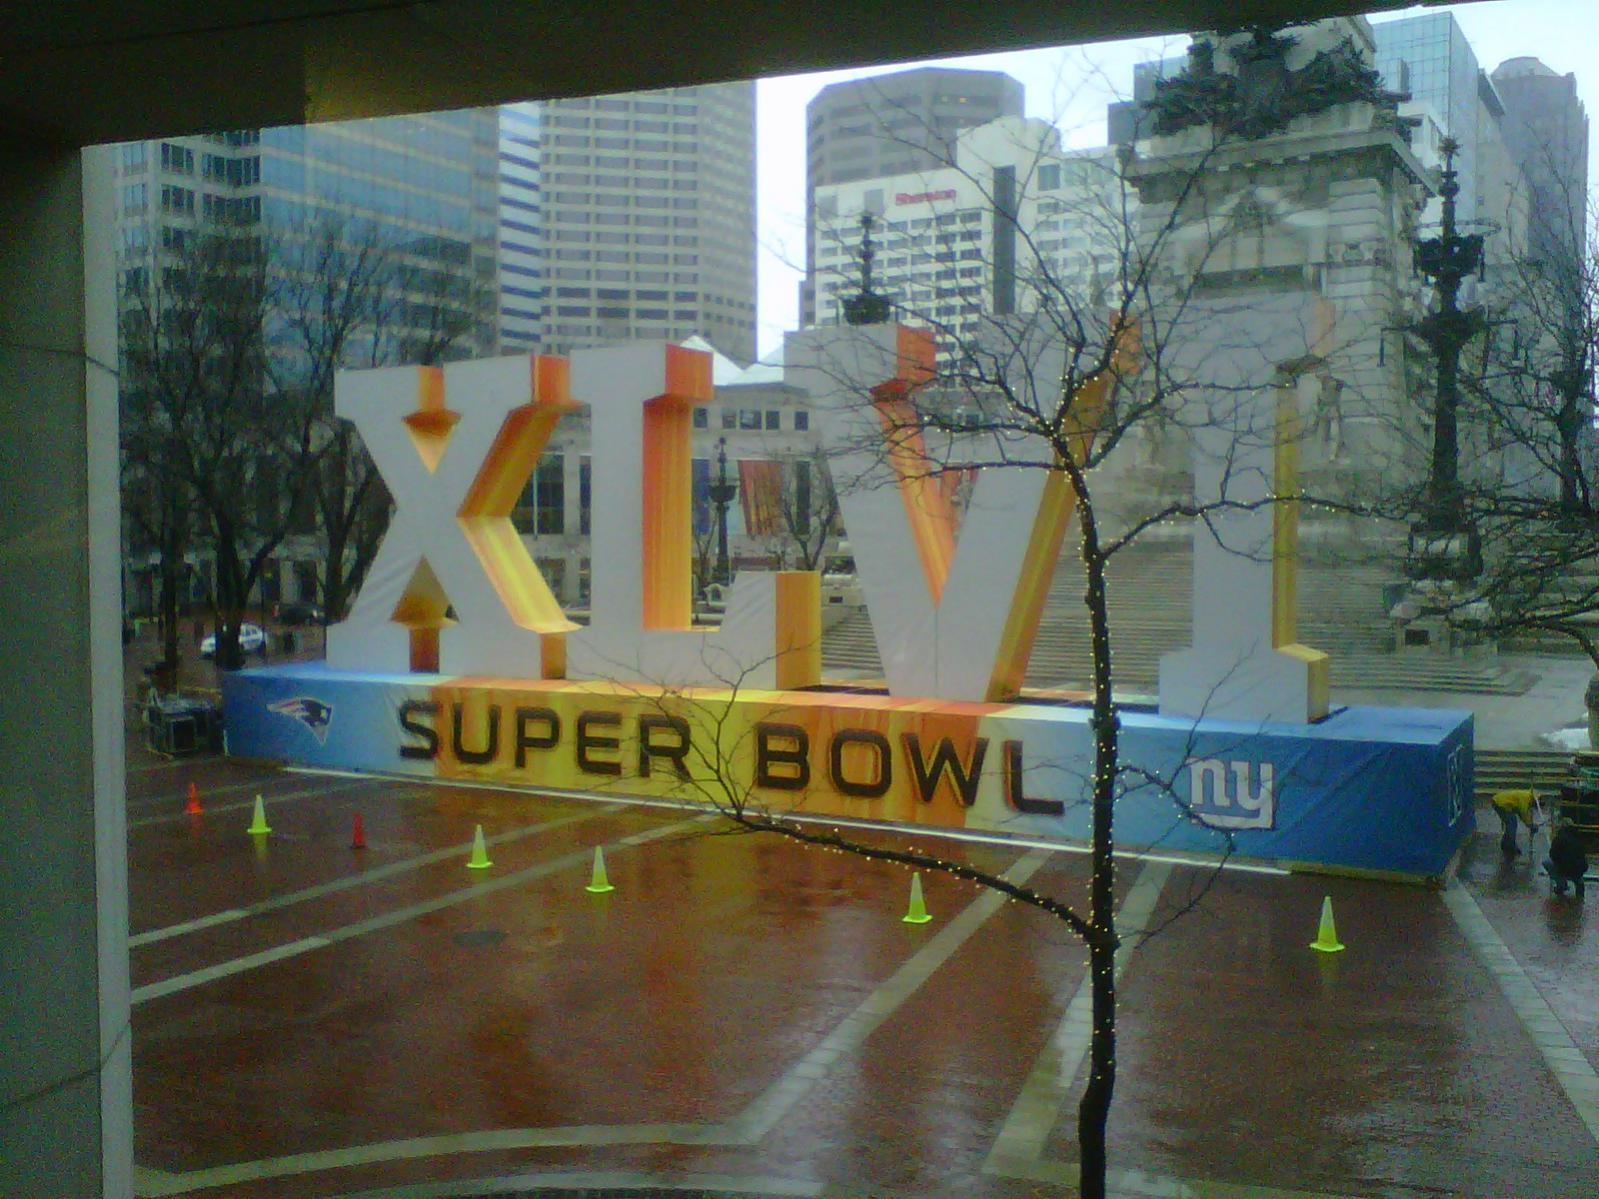 Working the Super Bowl in Broadcasting-img00482-20120126-1041.jpg